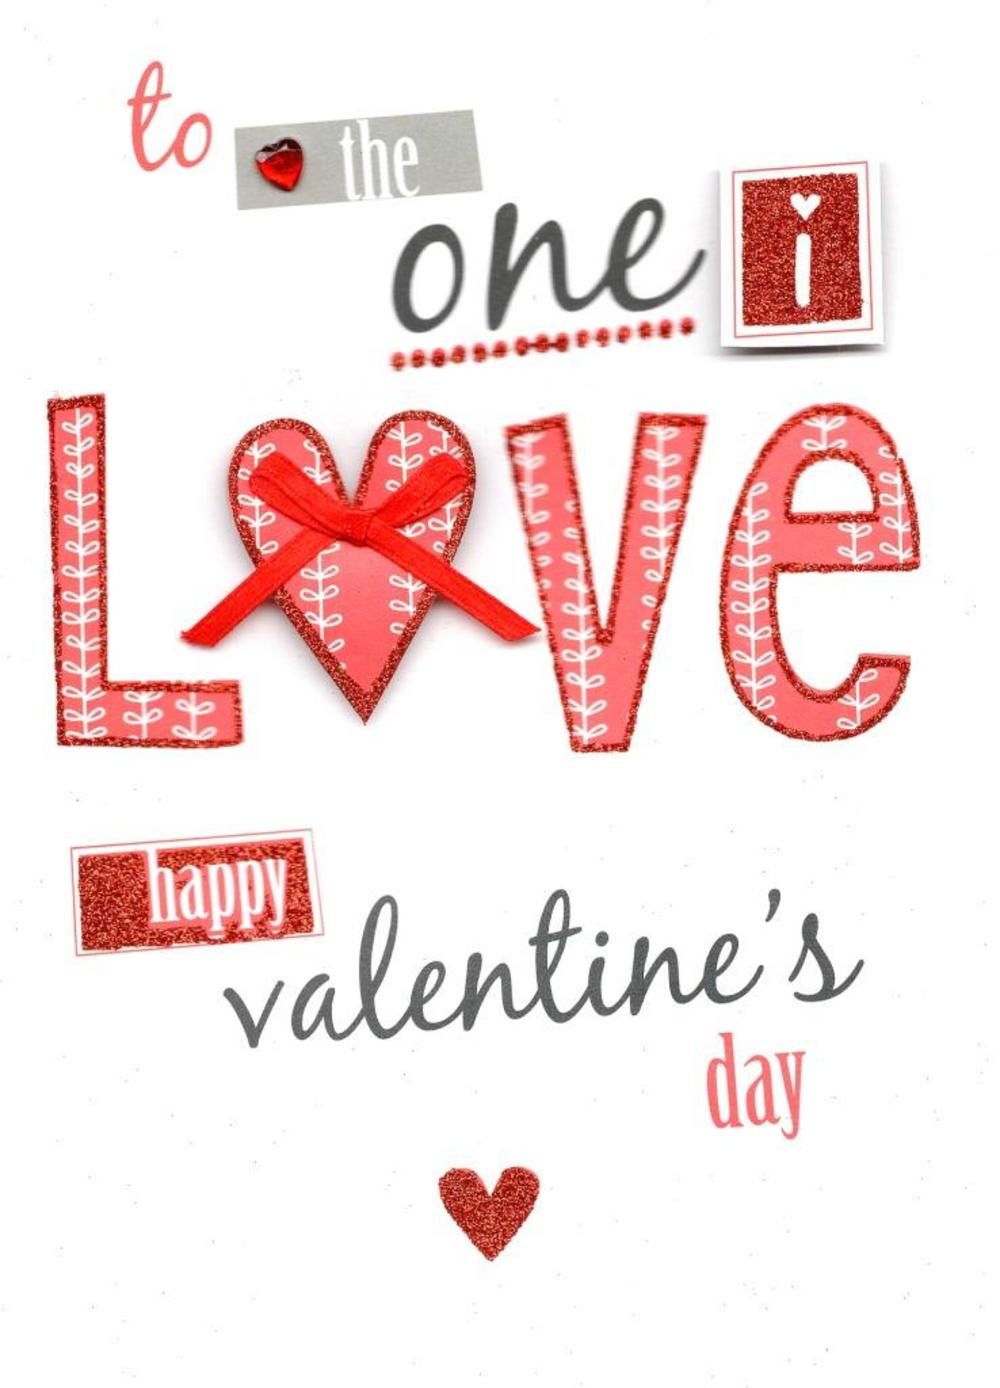 One I Love Valentine's Day Greeting Card